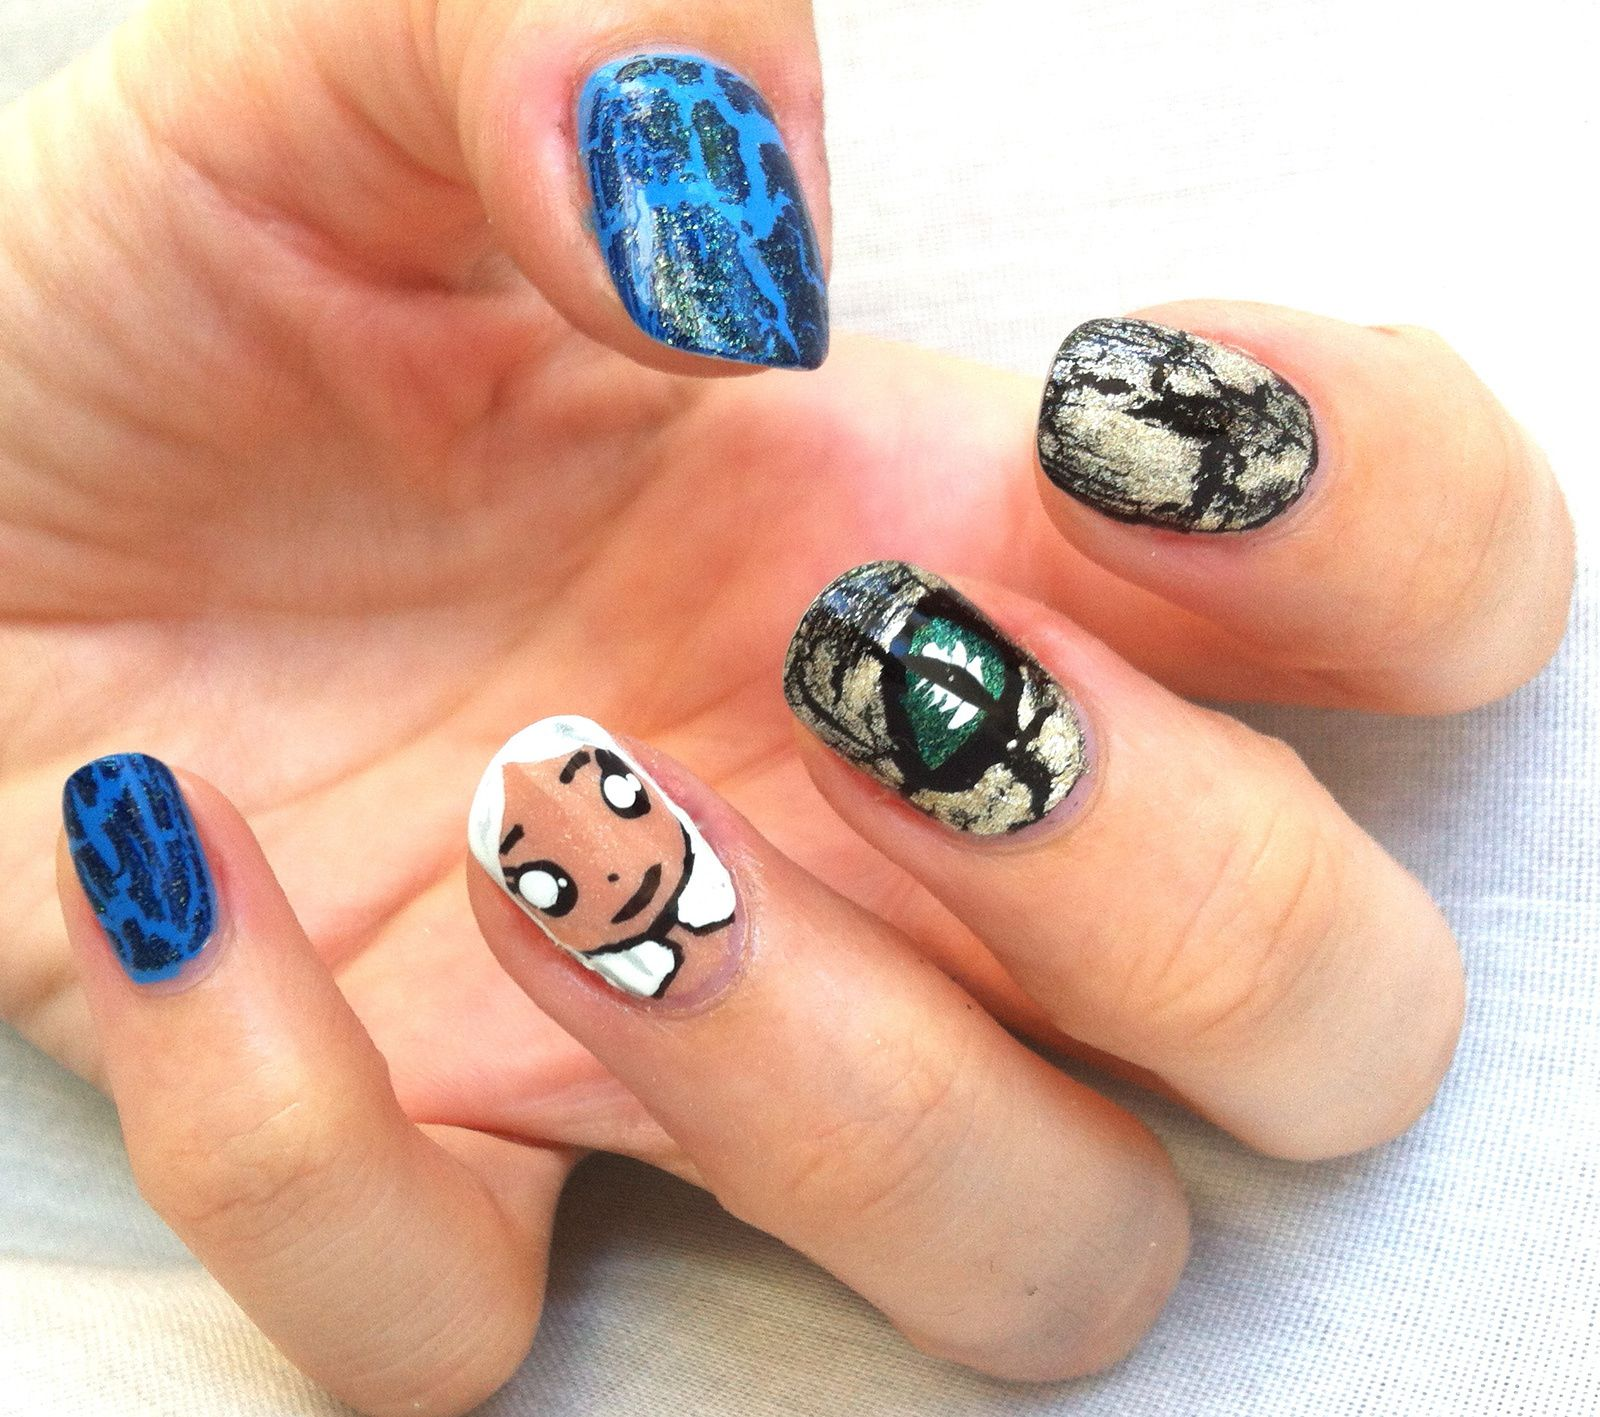 game of throne nails - Daenerys style